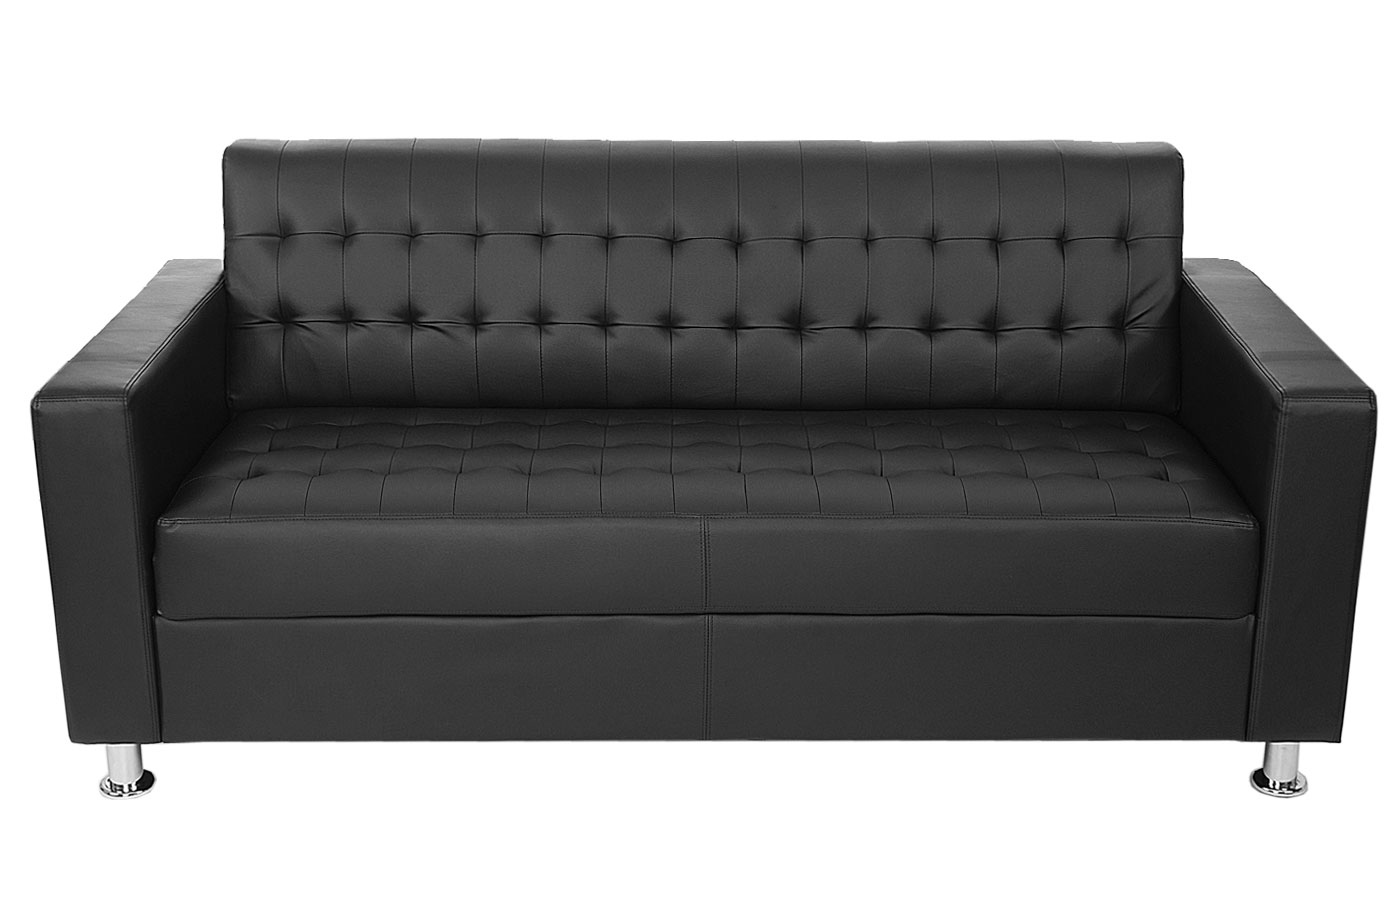 3er sofa pori couch loungesofa kunstleder metall f e schwarz. Black Bedroom Furniture Sets. Home Design Ideas